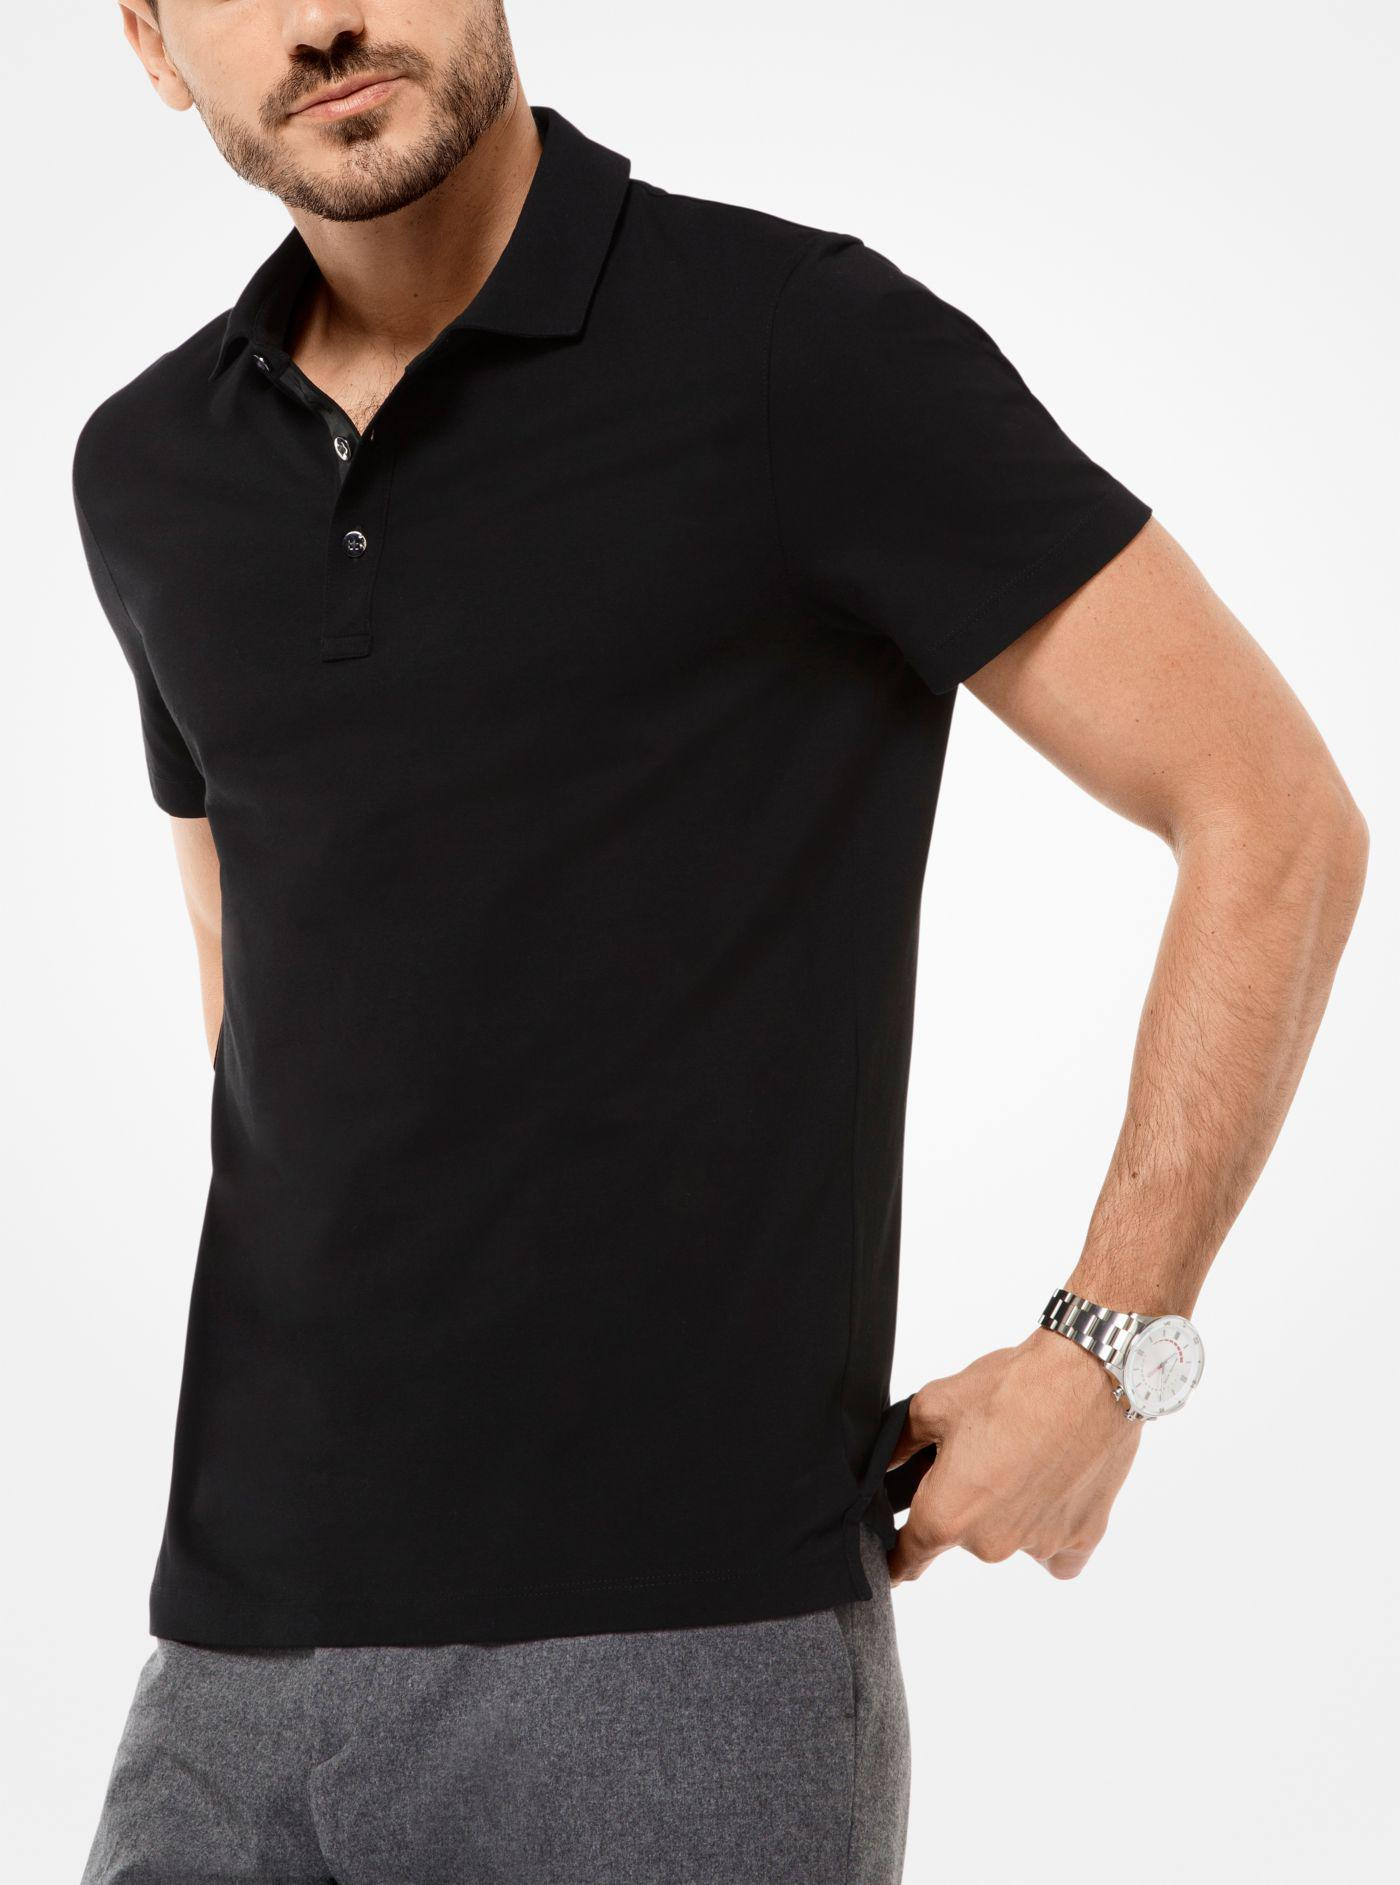 2a1e1f09 Michael Kors Cotton Polo Shirt in Black for Men - Lyst